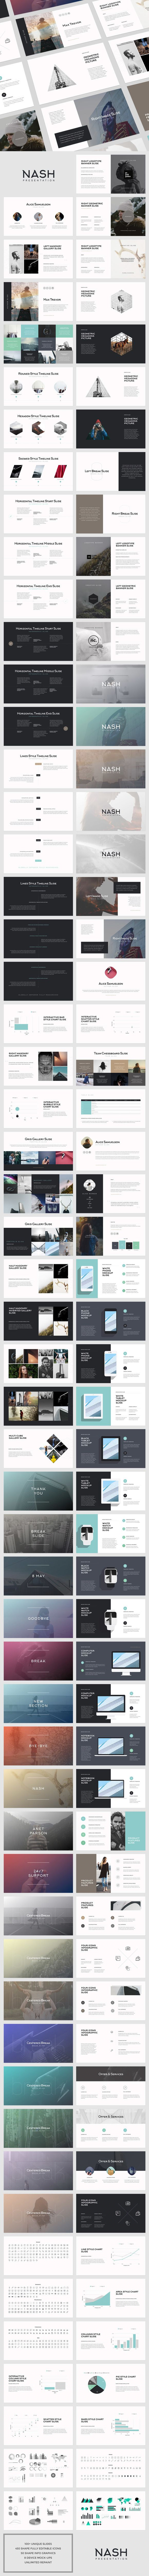 NASH Keynote Presentation + BONUS by GoaShape on Behance